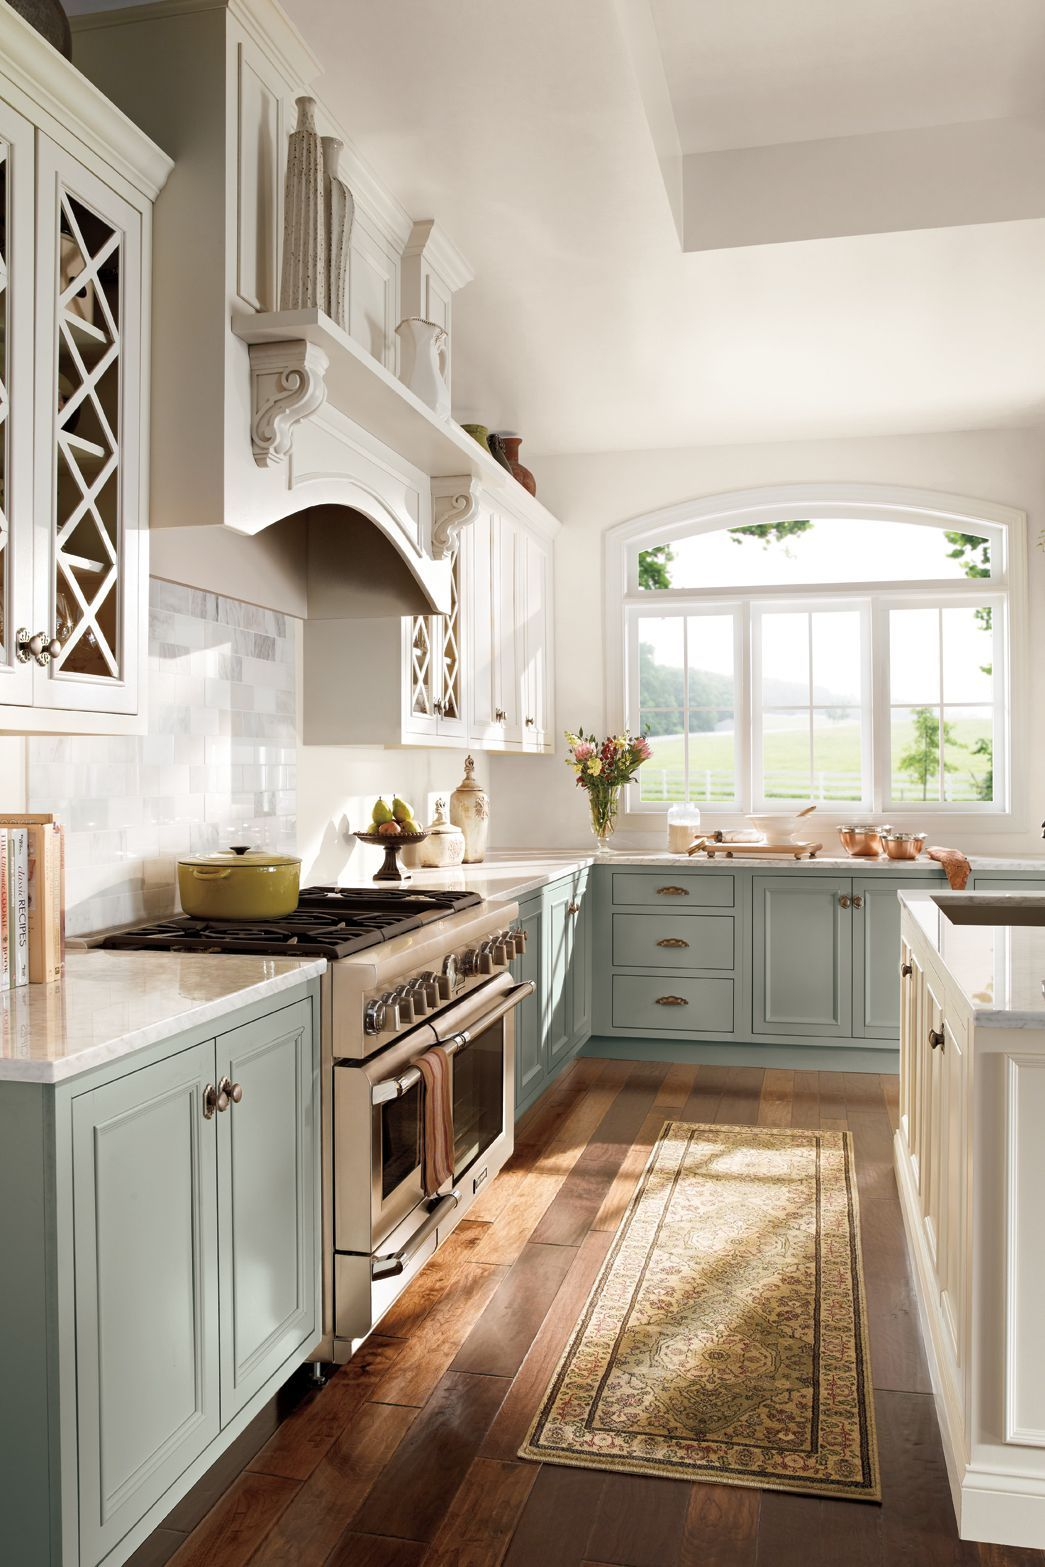 10 kitchen cabinet color combinations you ll actually want to commit to with images country on kitchen cabinets color combination id=15579